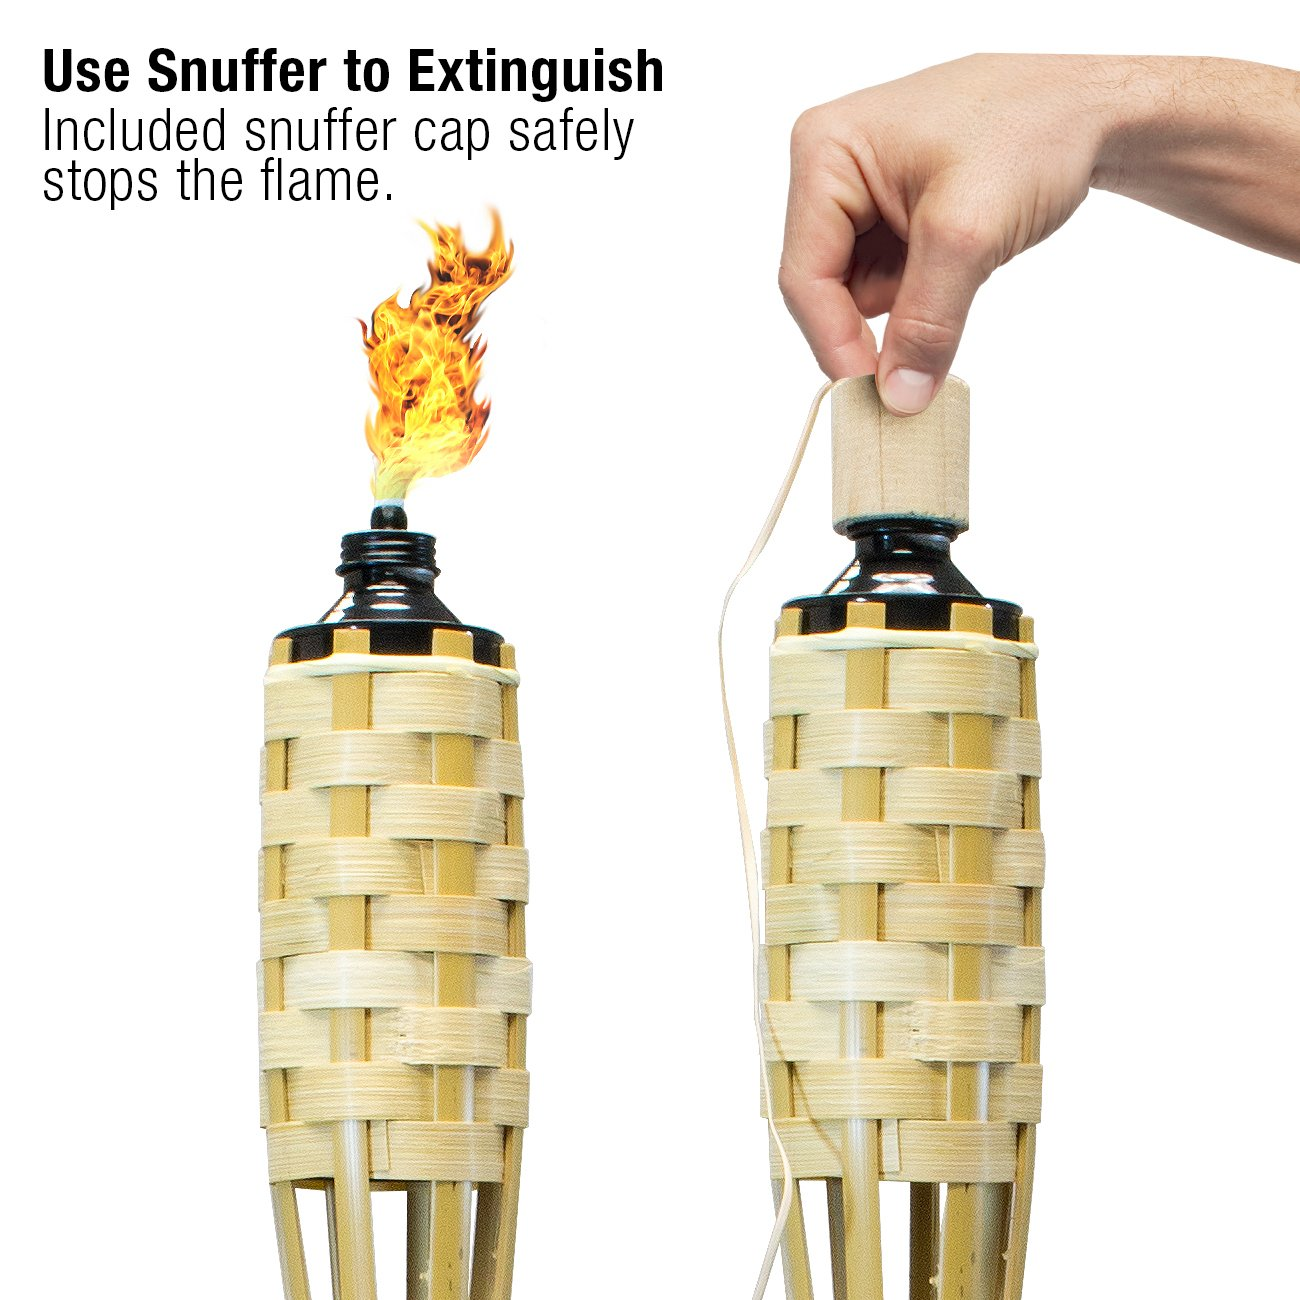 Includes Metal Oil Canisters with Covers to Extinguish Flame Parties Matney Bamboo Torches 12 Pack Extra Long 60 Inches Great for Outdoor Decorating Luau